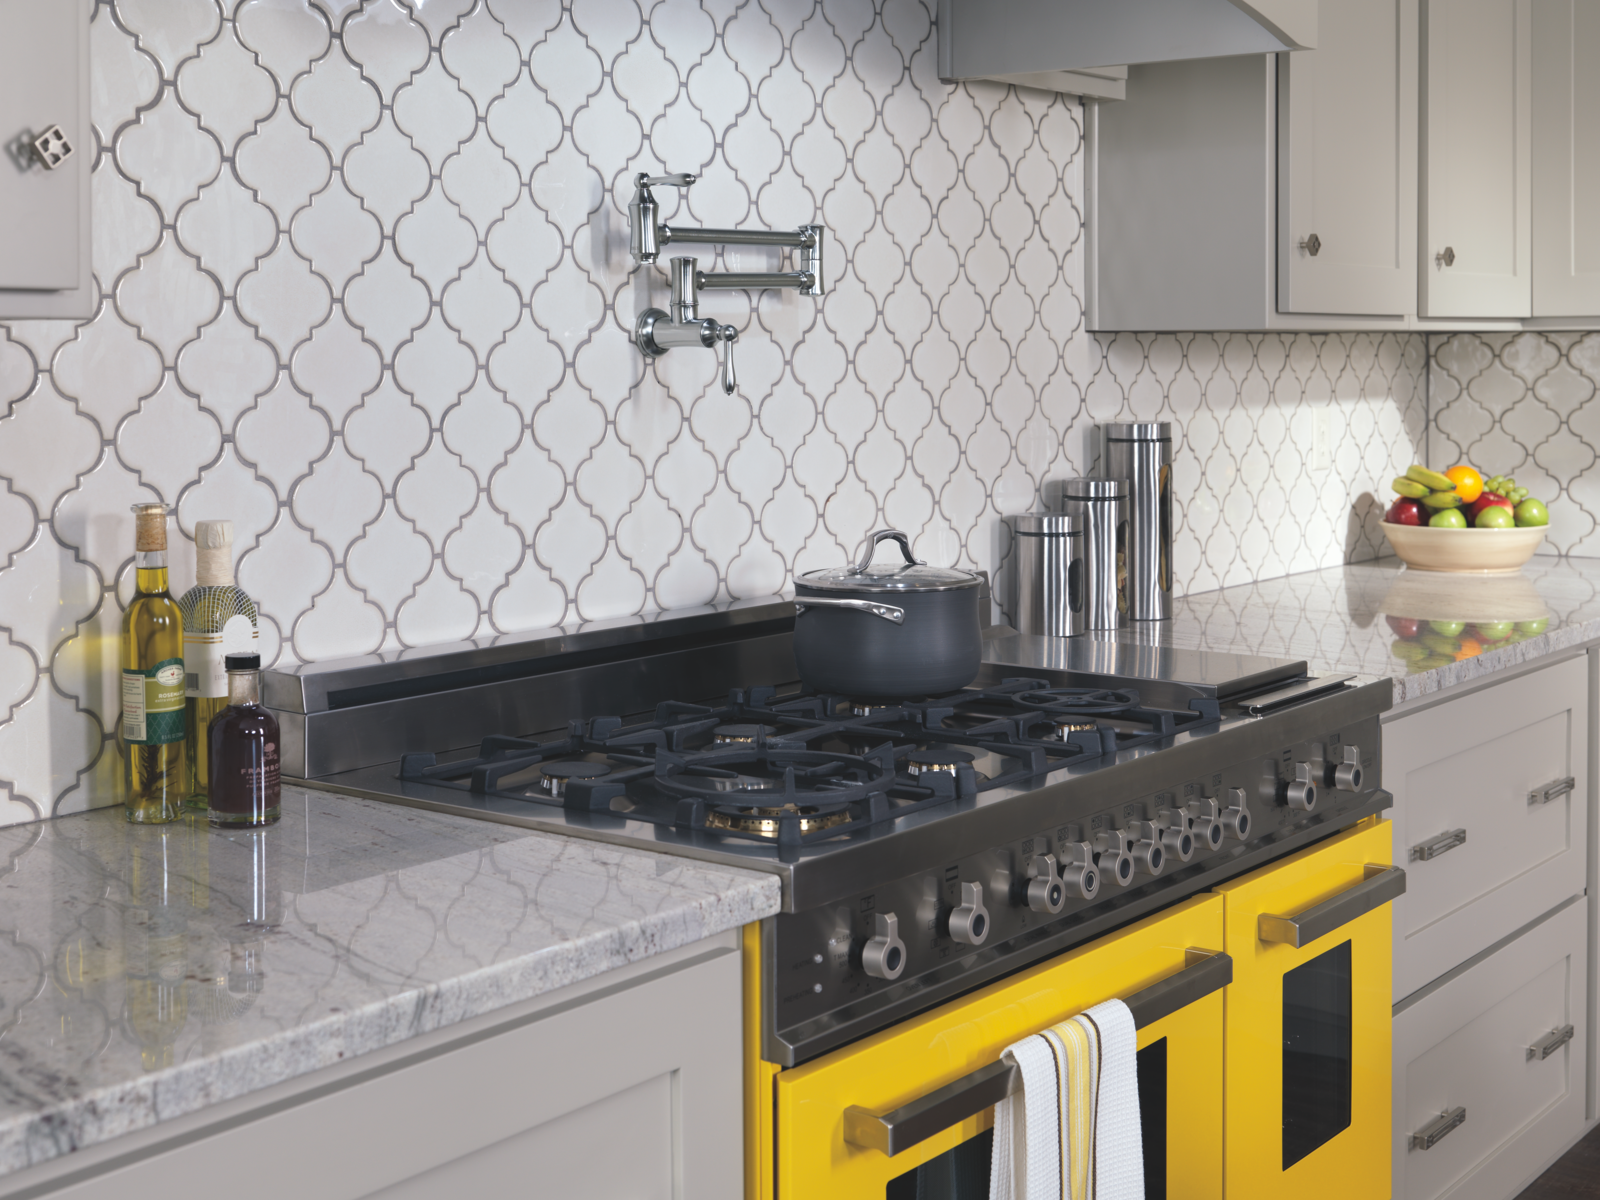 Kitchen with bright yellow range, grey cabinets and patterned tile backsplash.